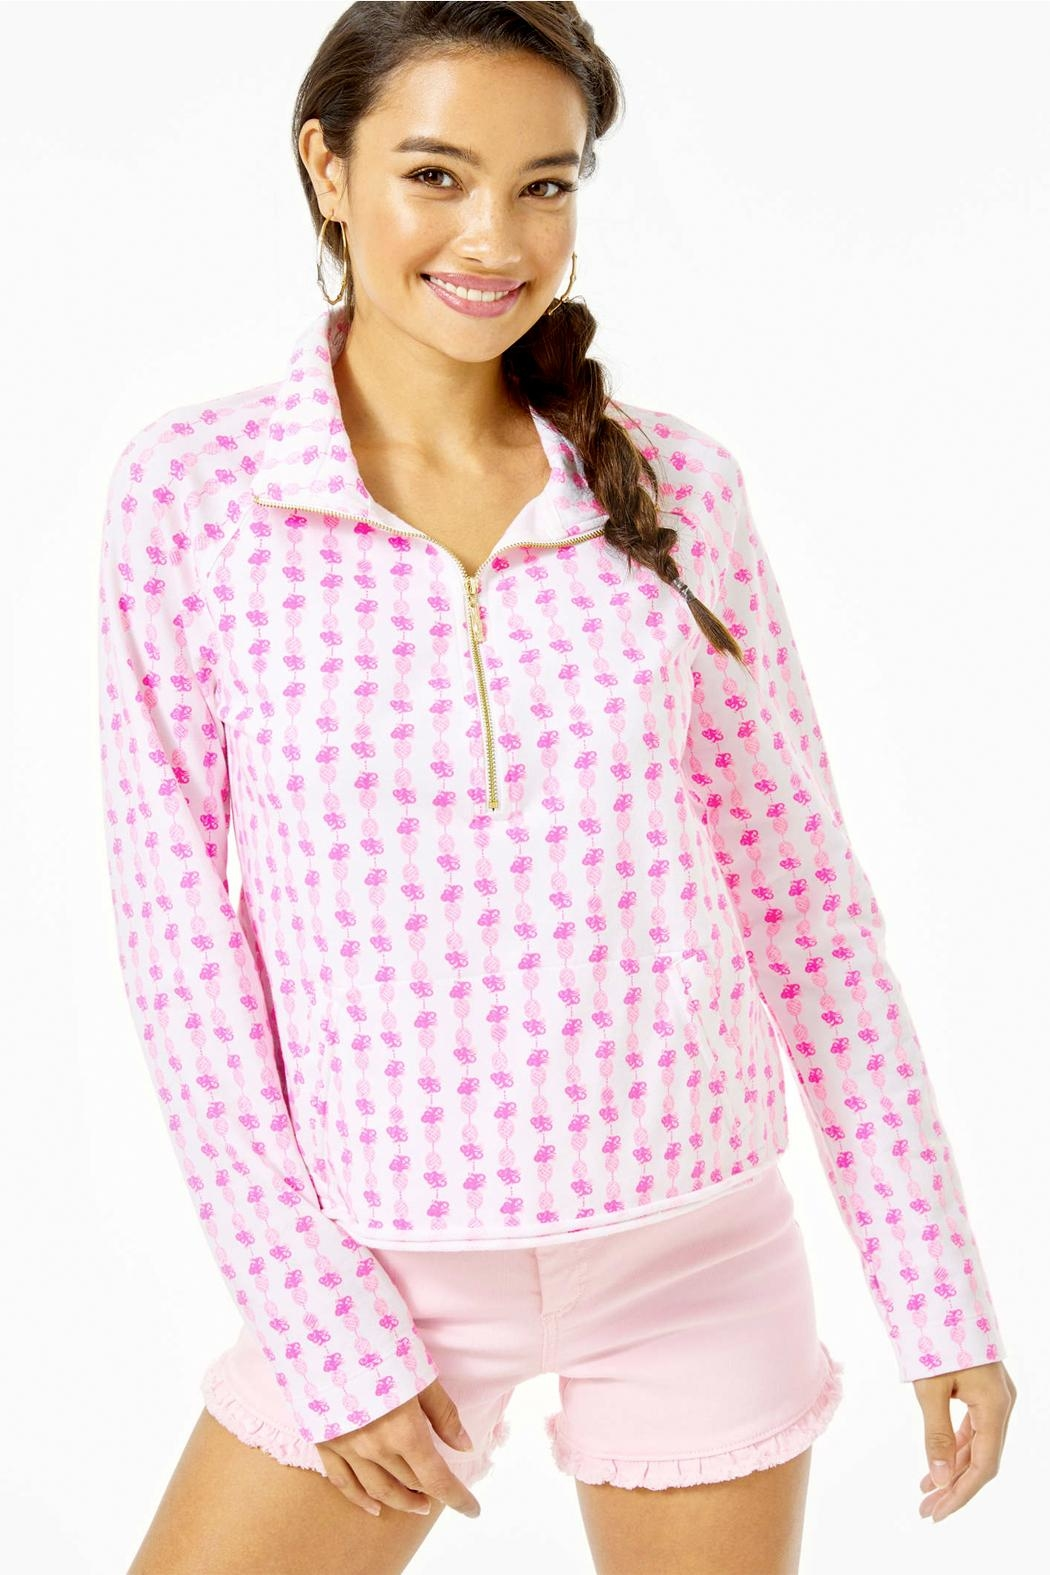 Lilly Pulitzer Ronan Cropped-Popover Upf-50+ - Main Image